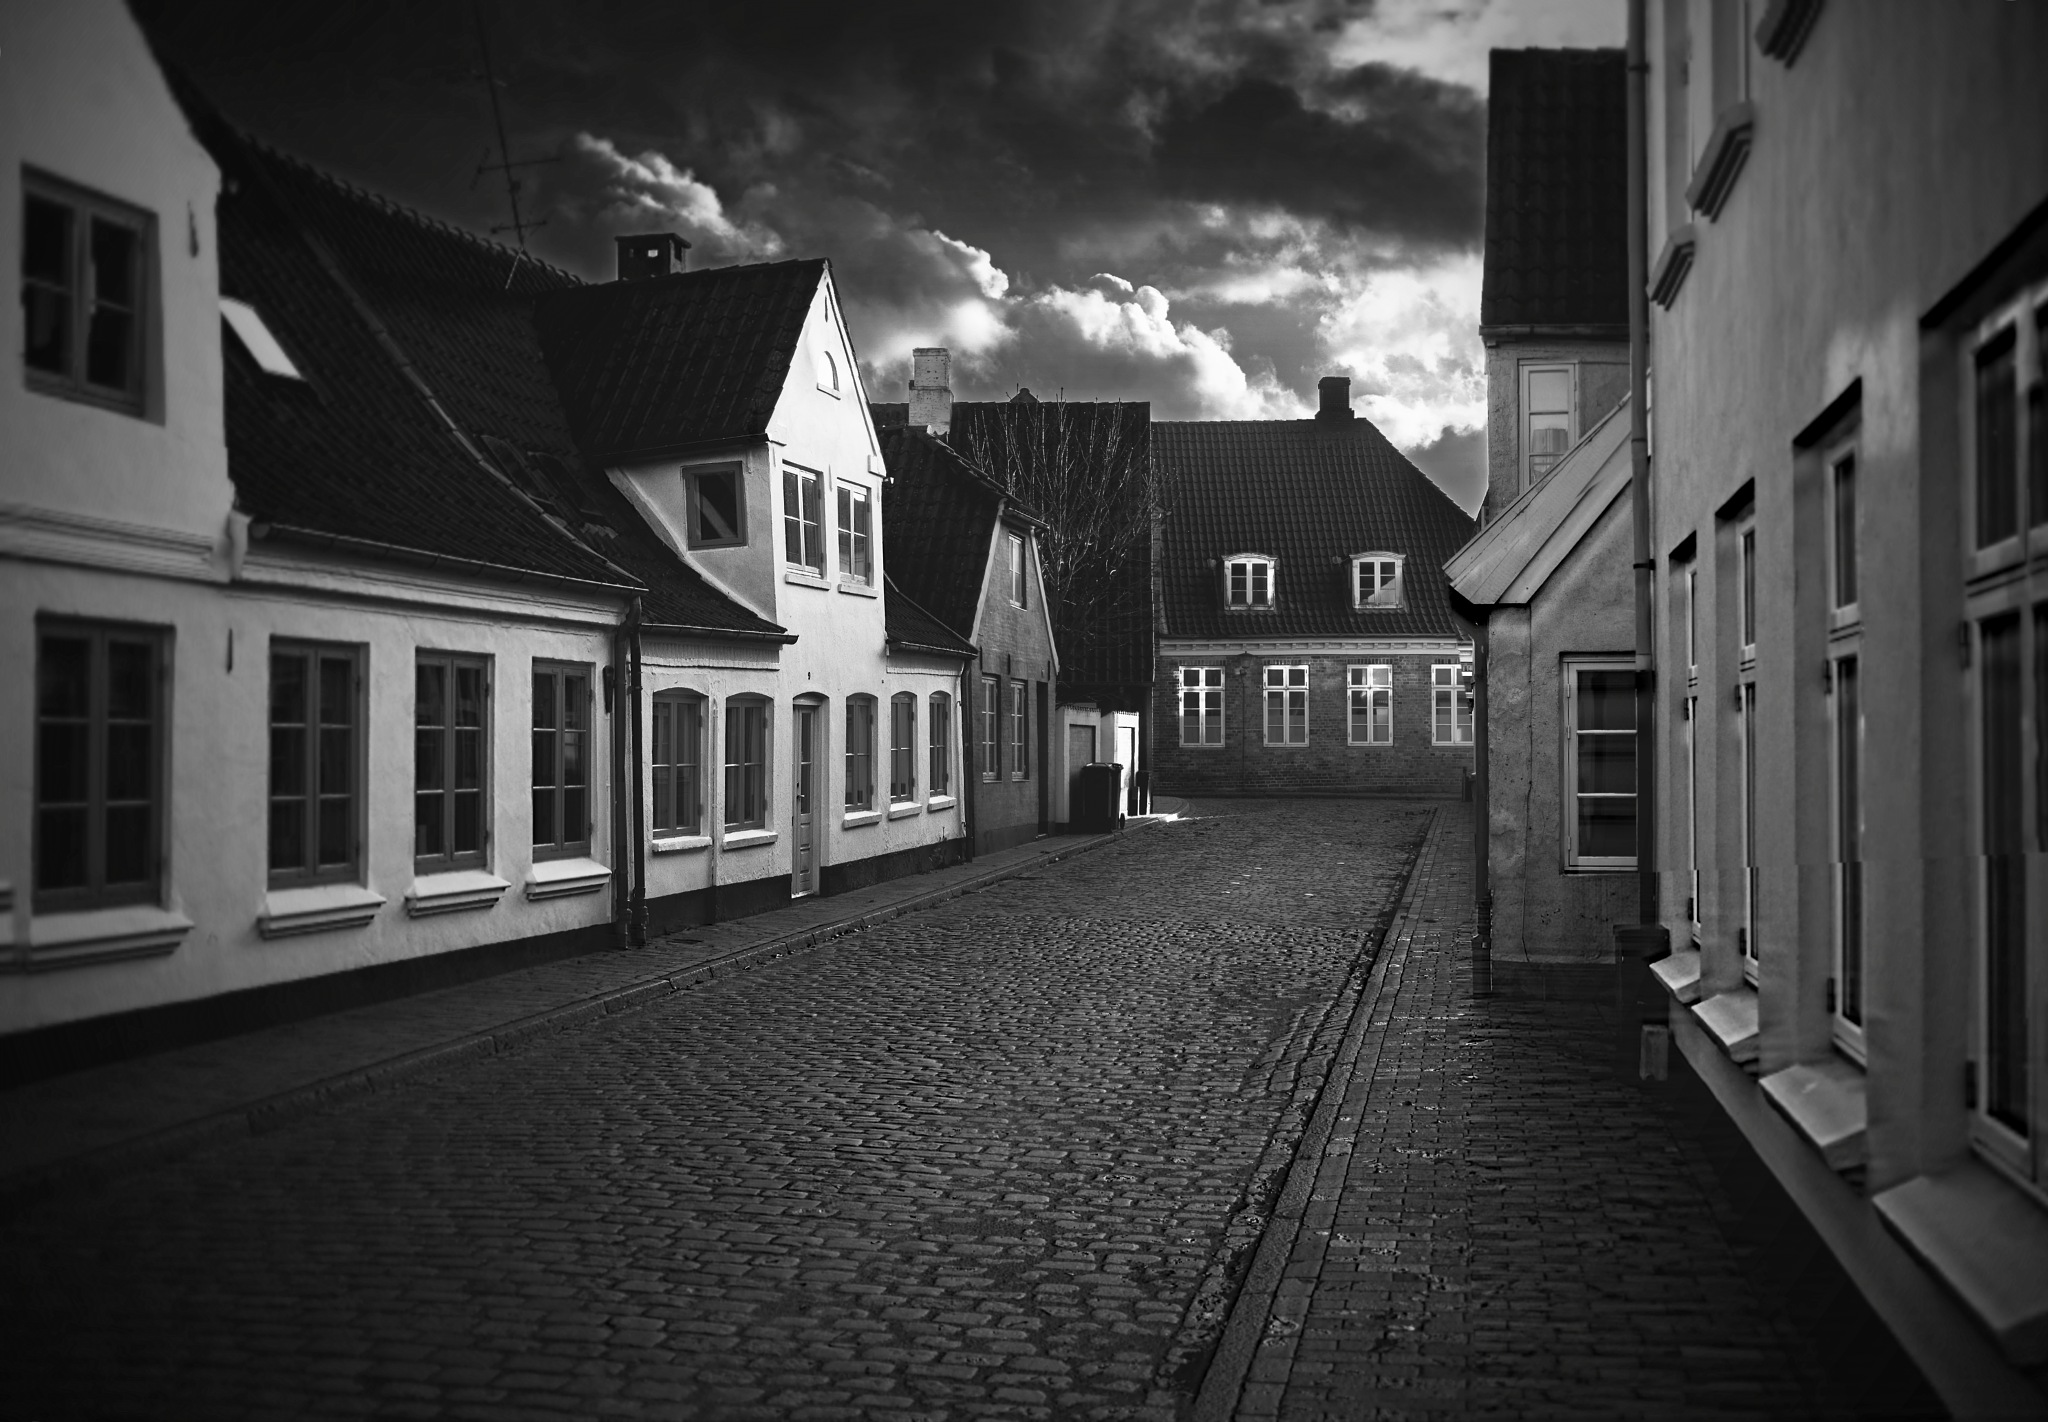 the empty streets  by Black cat photography